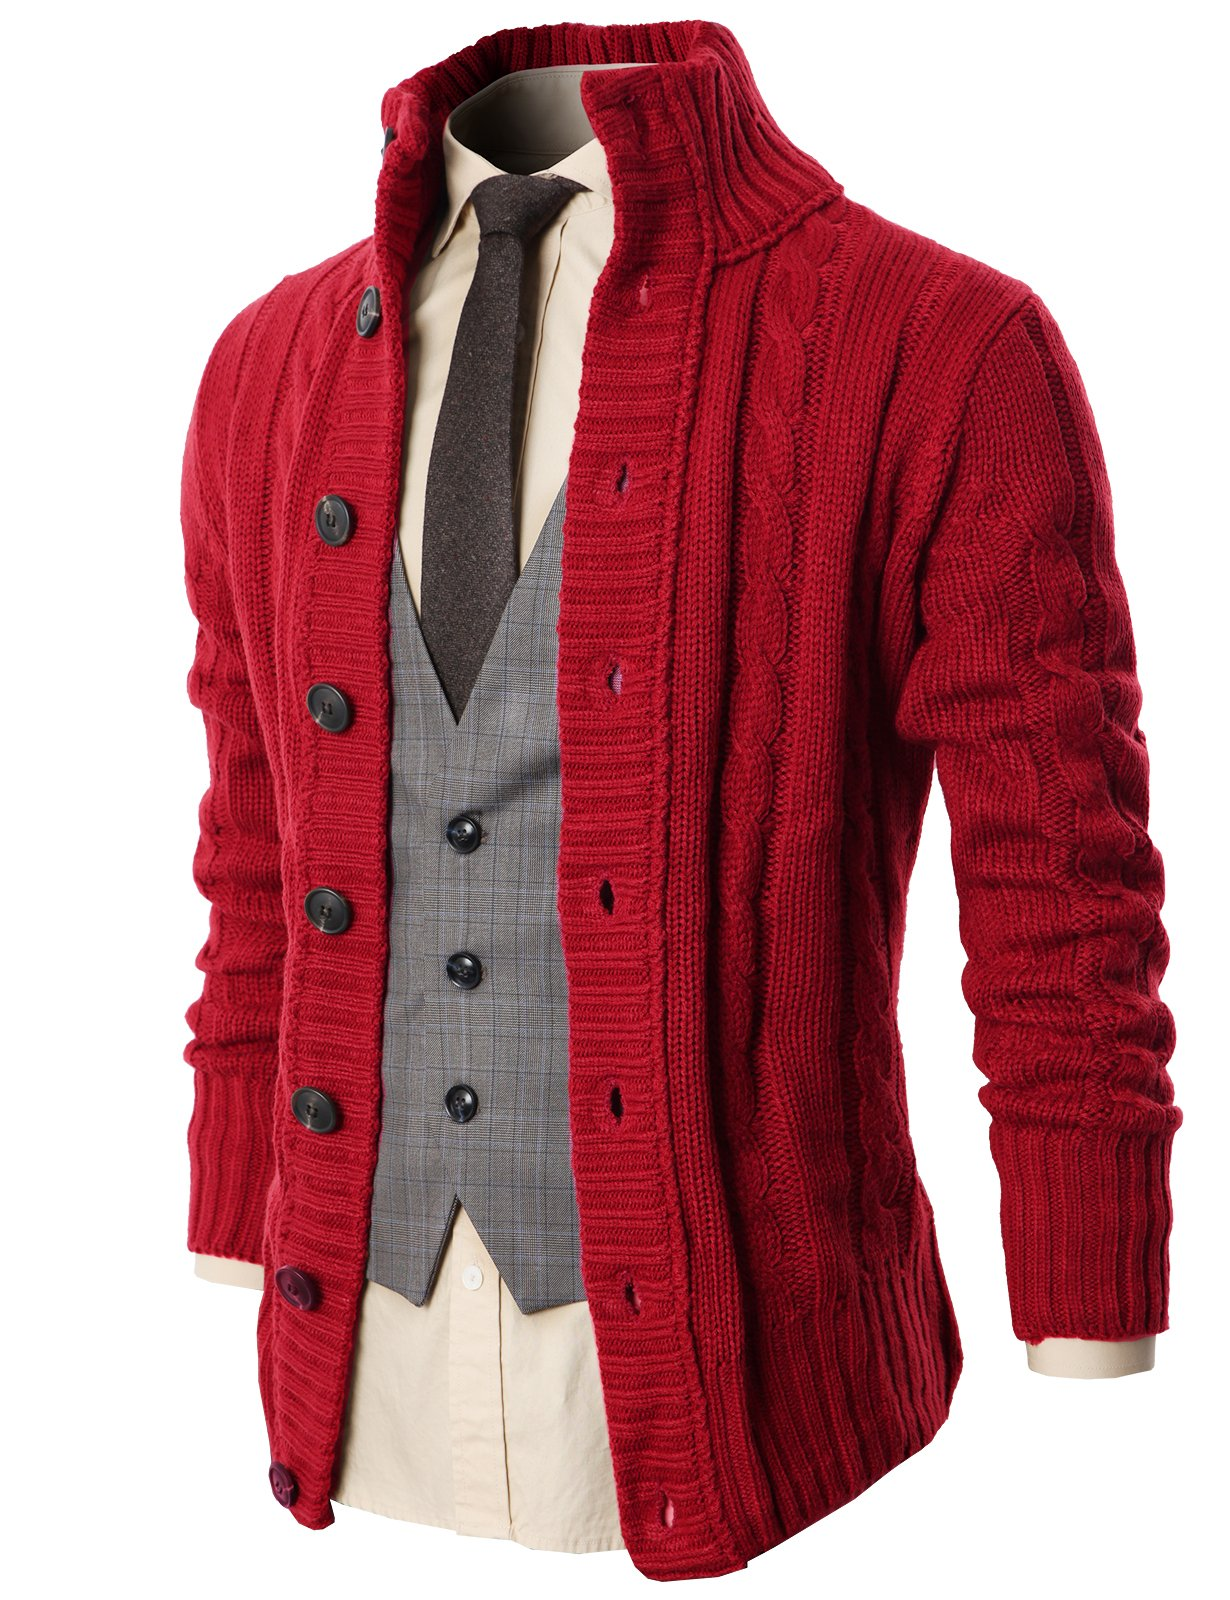 H2H Mens Regular Fit Ribbed Knit Cardigan With Pockets WINE US M/Asia L (KMOCAL020)